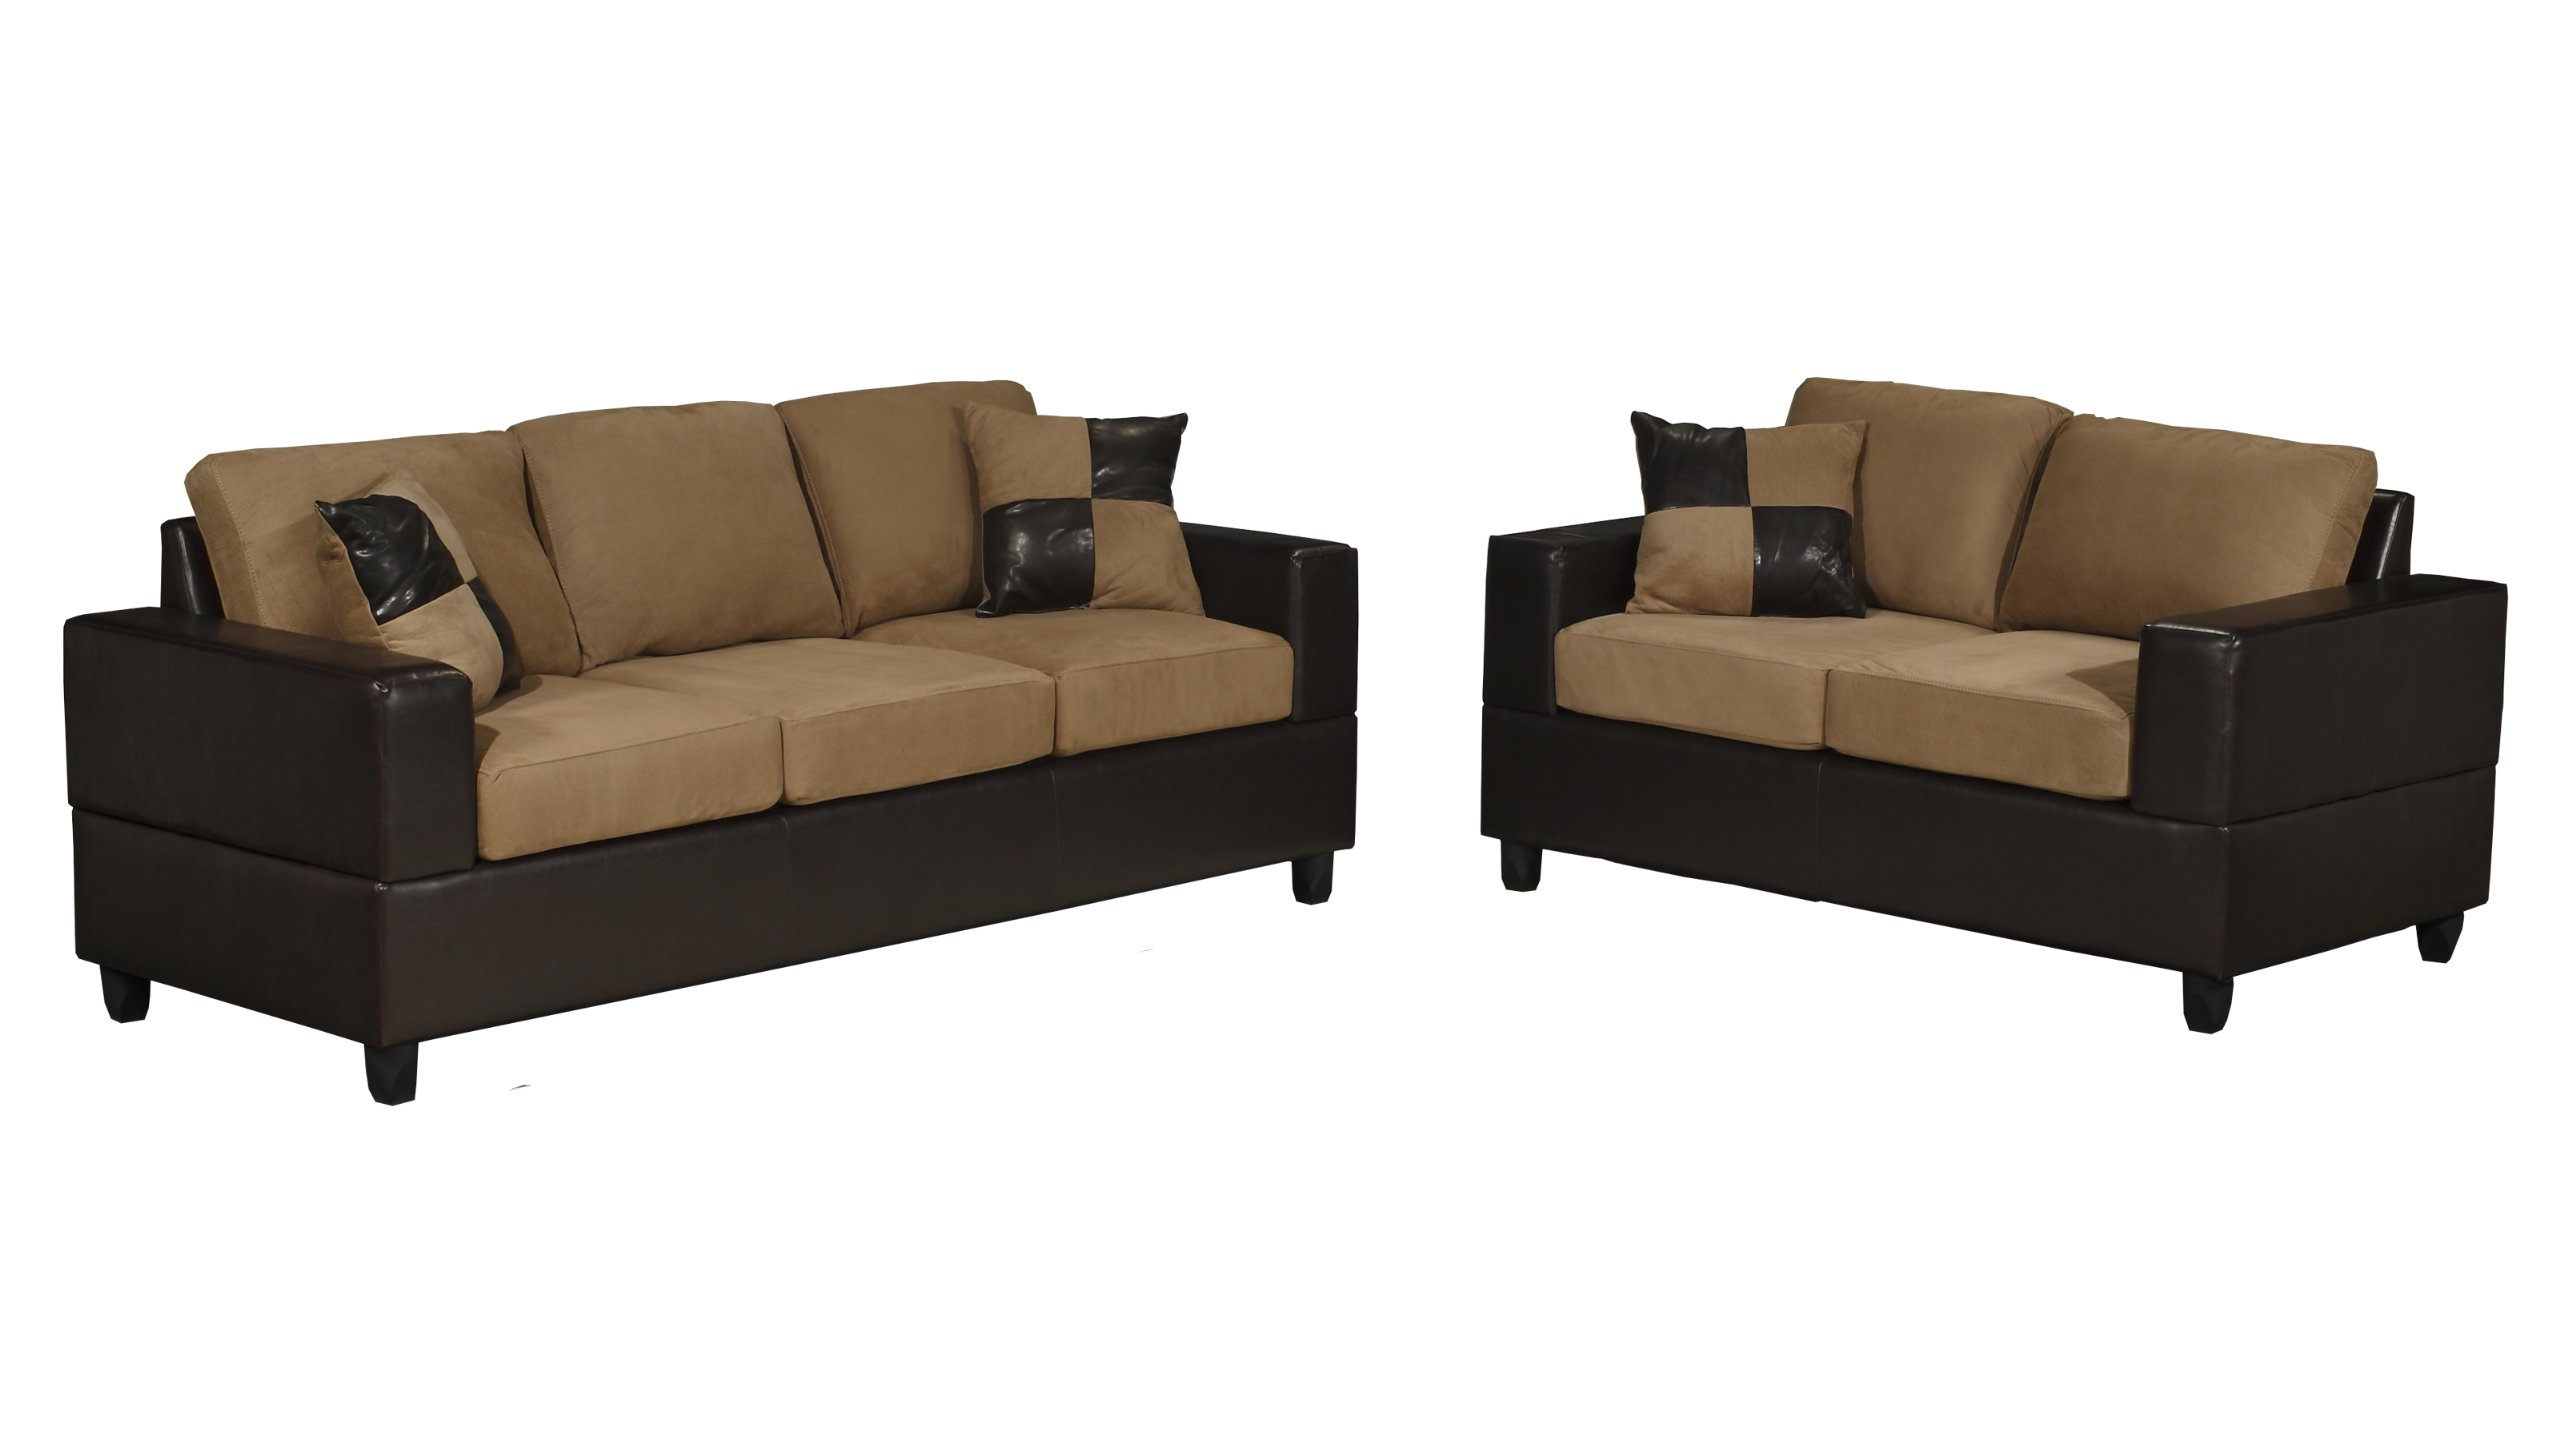 Bobkona seattle microfiber sofa and loveseat 2 piece set in saddle color Microfiber sofa and loveseat set